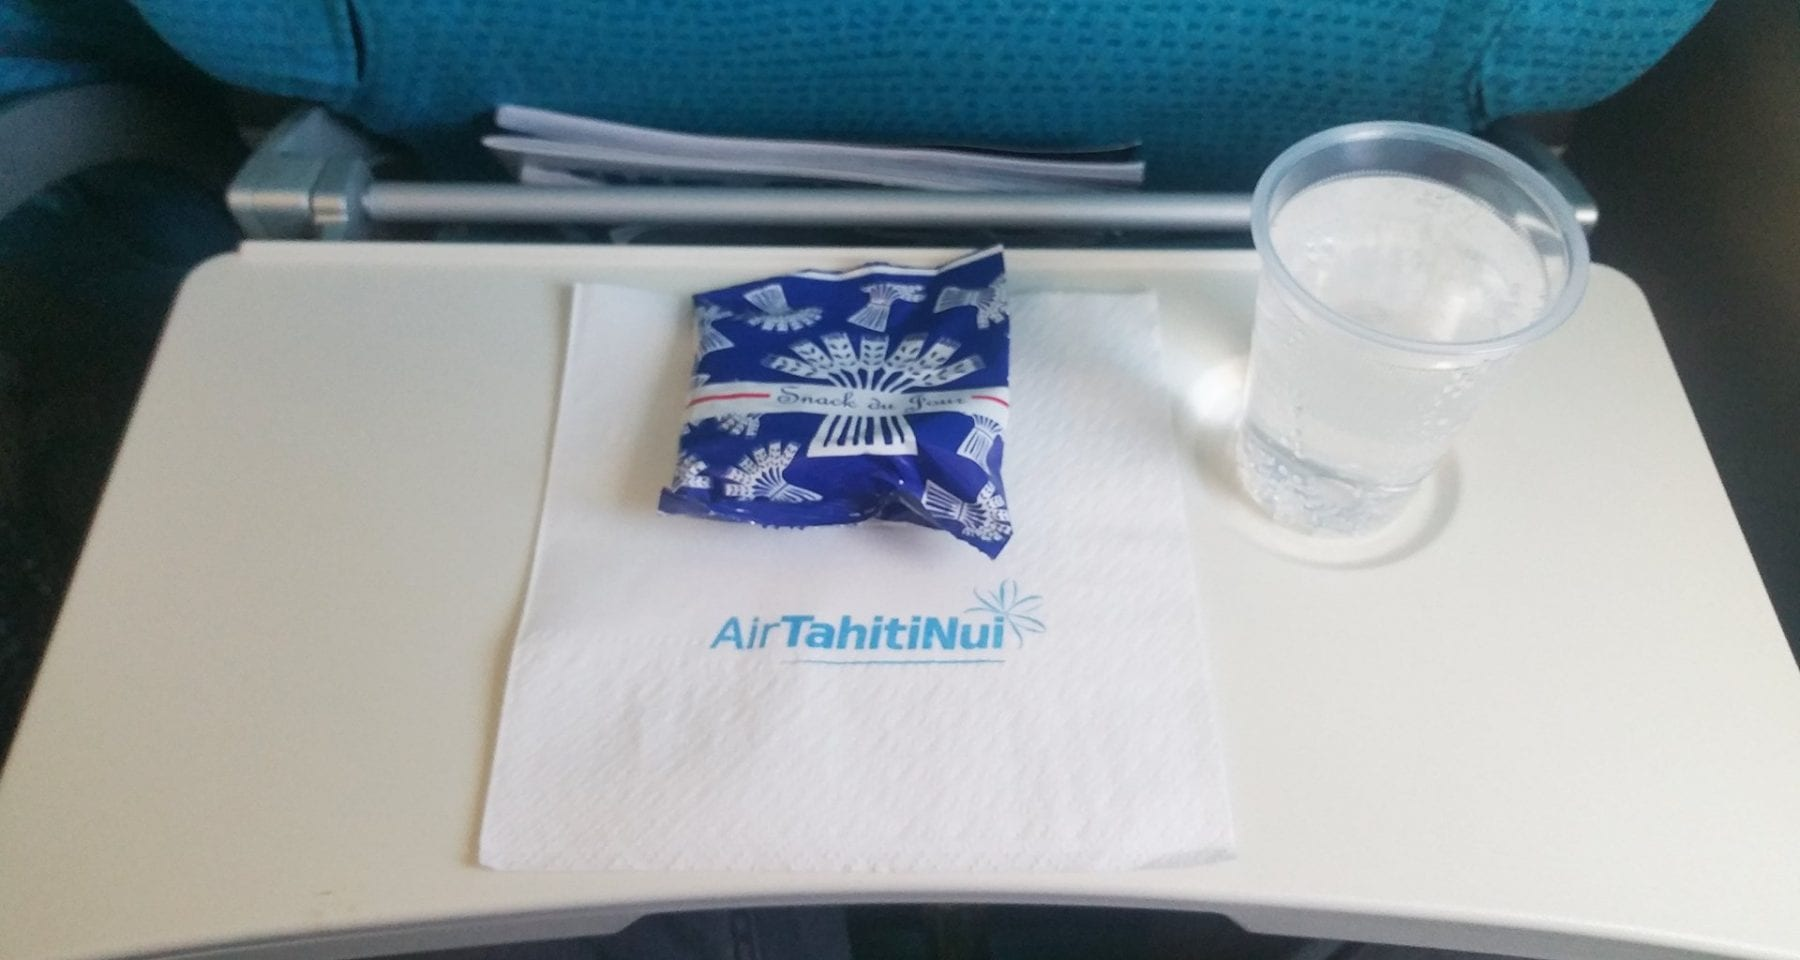 Air Tahiti Nui Drink and Snack Service Economy Class